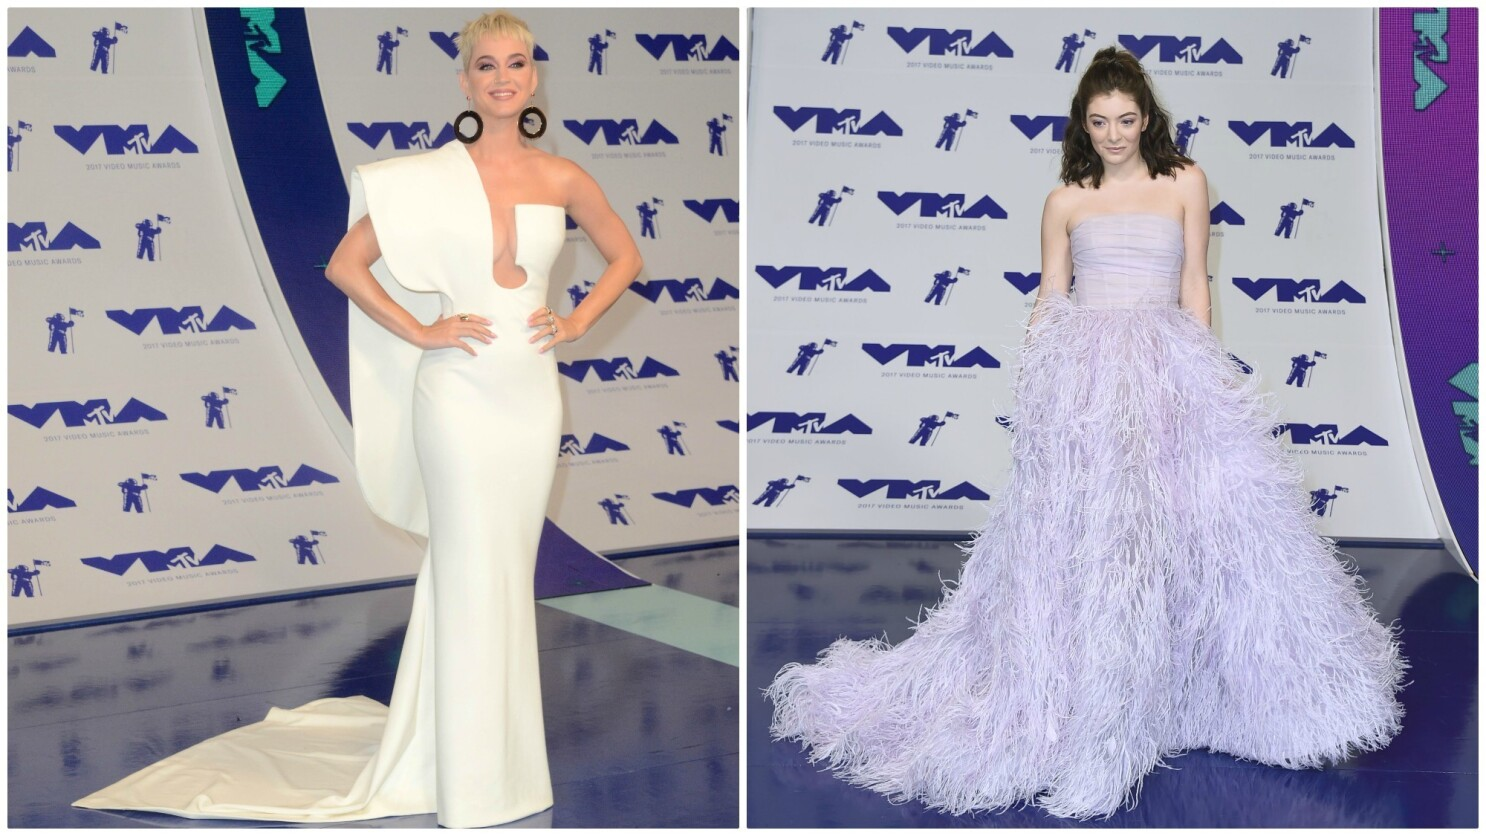 Katy Perry And Lorde Light Up The Fashion At The Mtv Video Music Awards Los Angeles Times